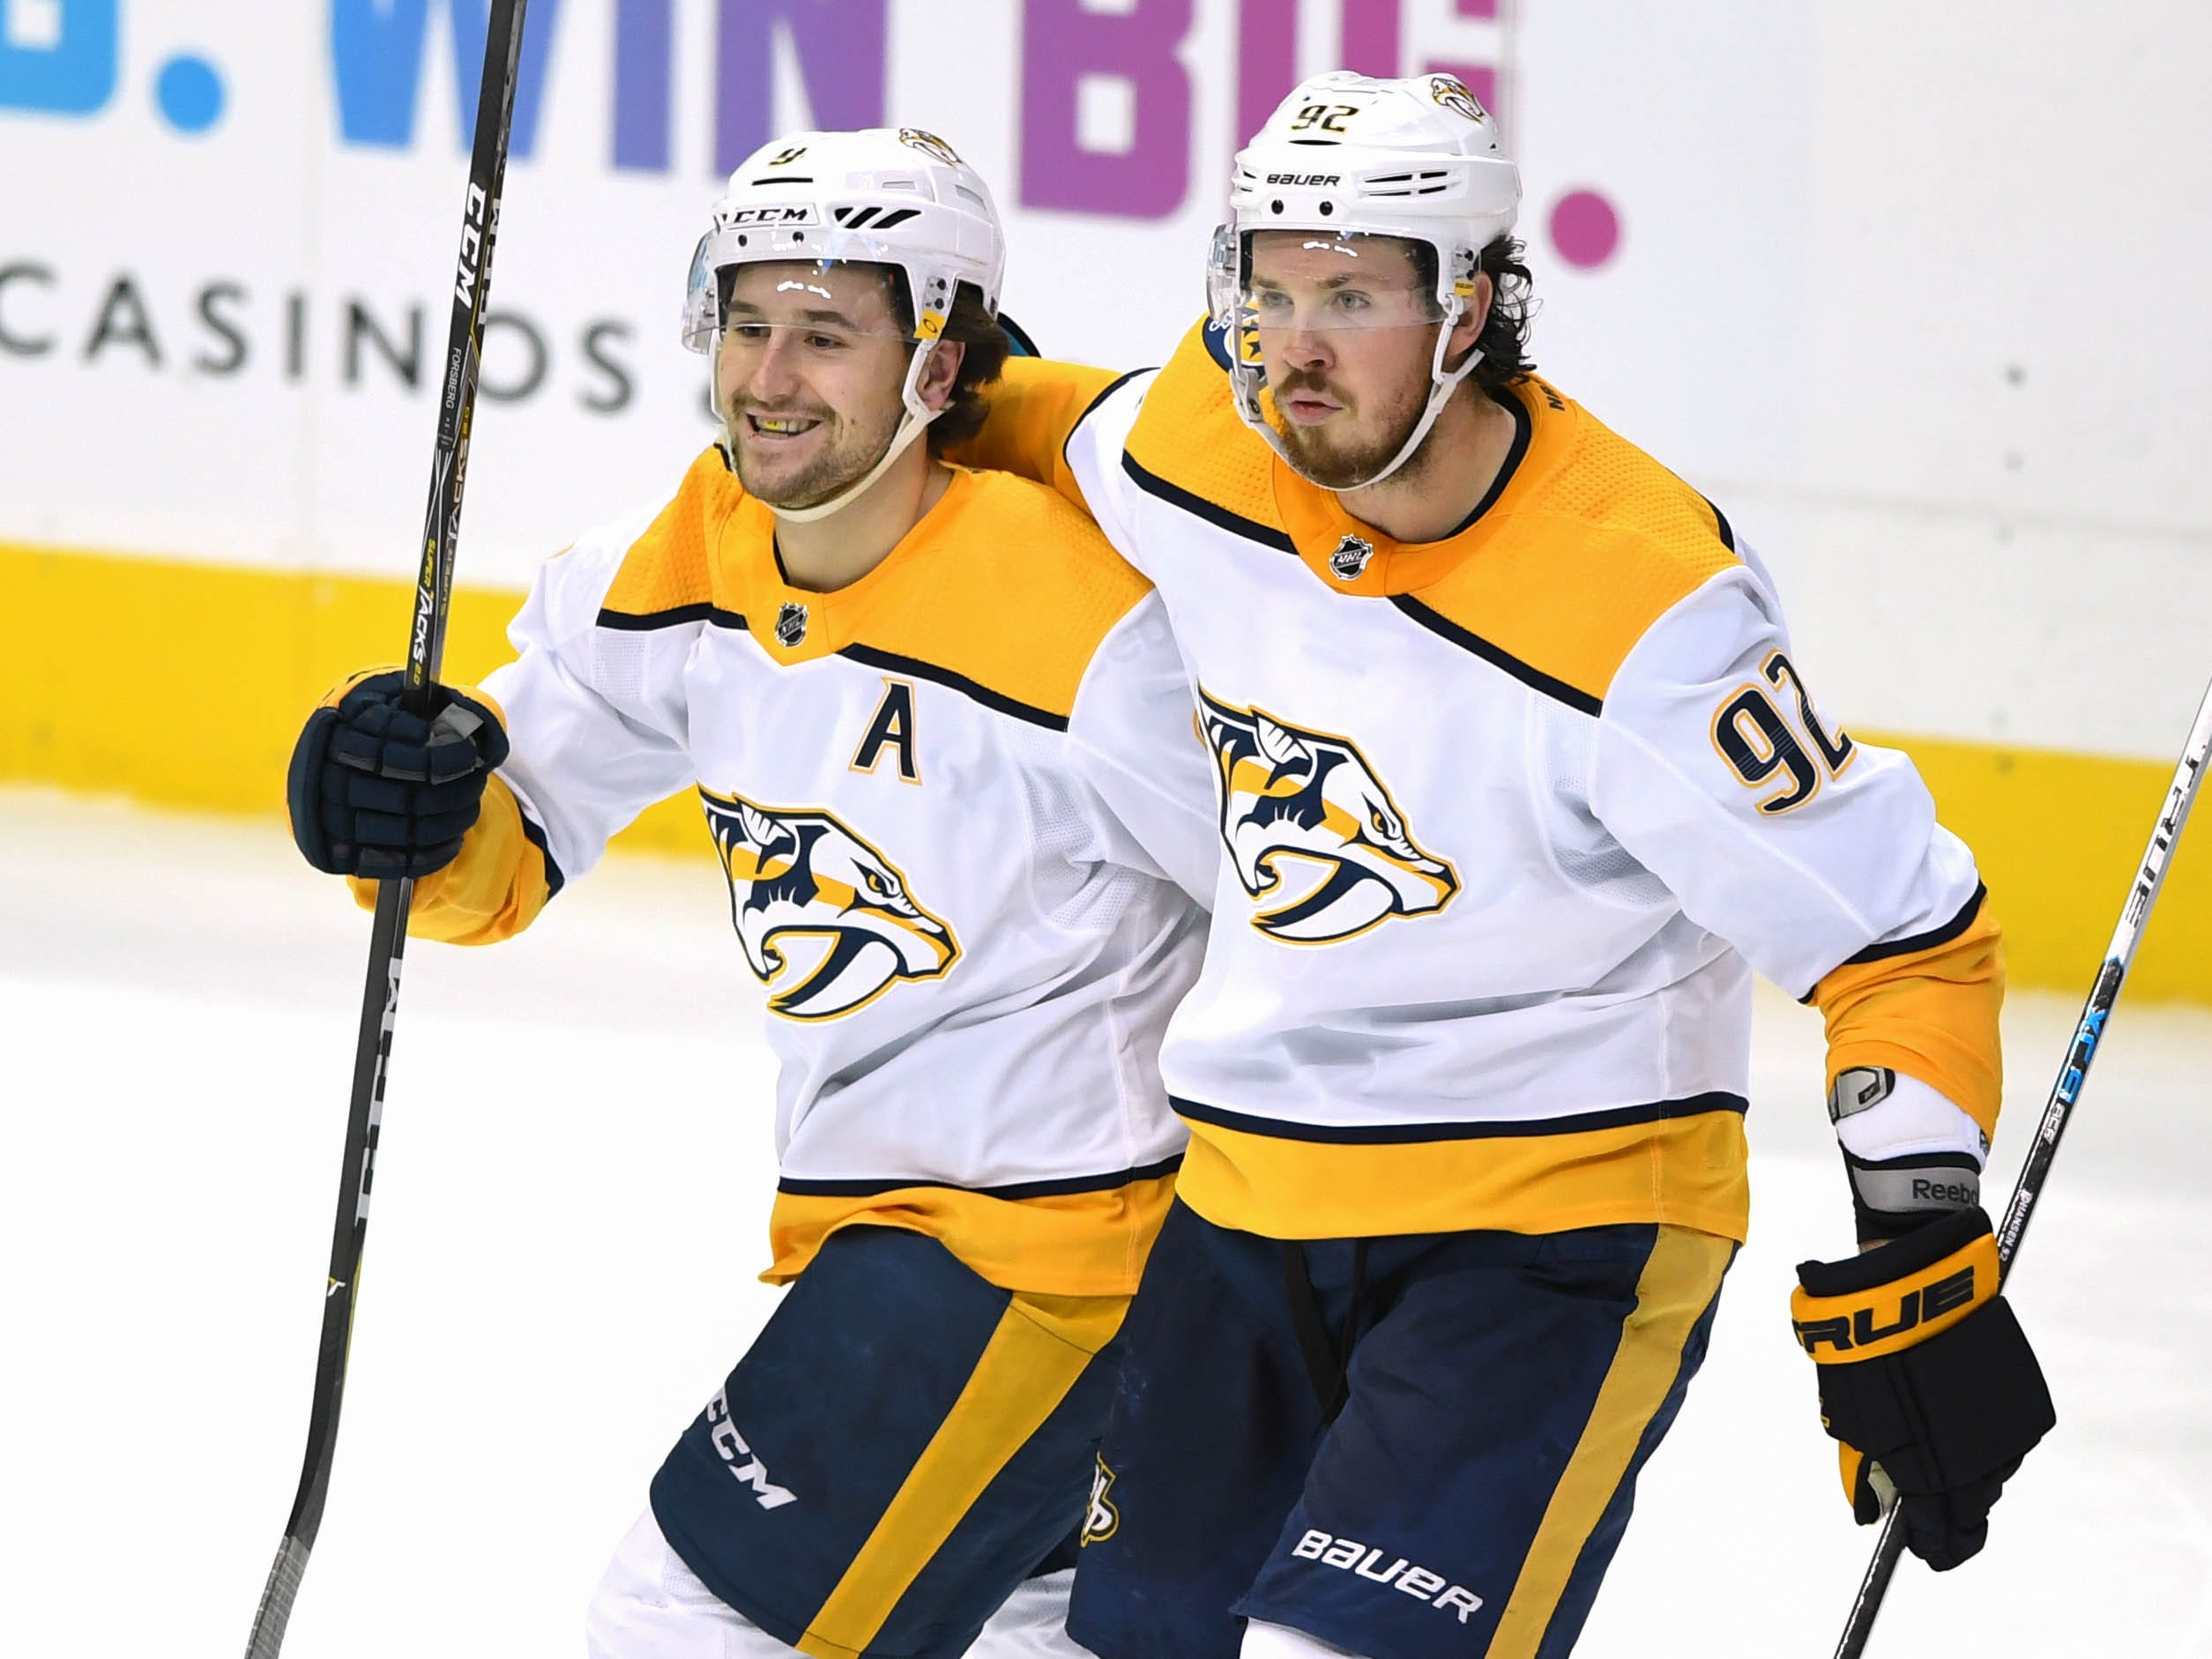 Nashville Predators left wing Filip Forsberg (9) and center Ryan Johansen (92) react at the end of the game against the Dallas Stars during overtime at American Airlines Center.